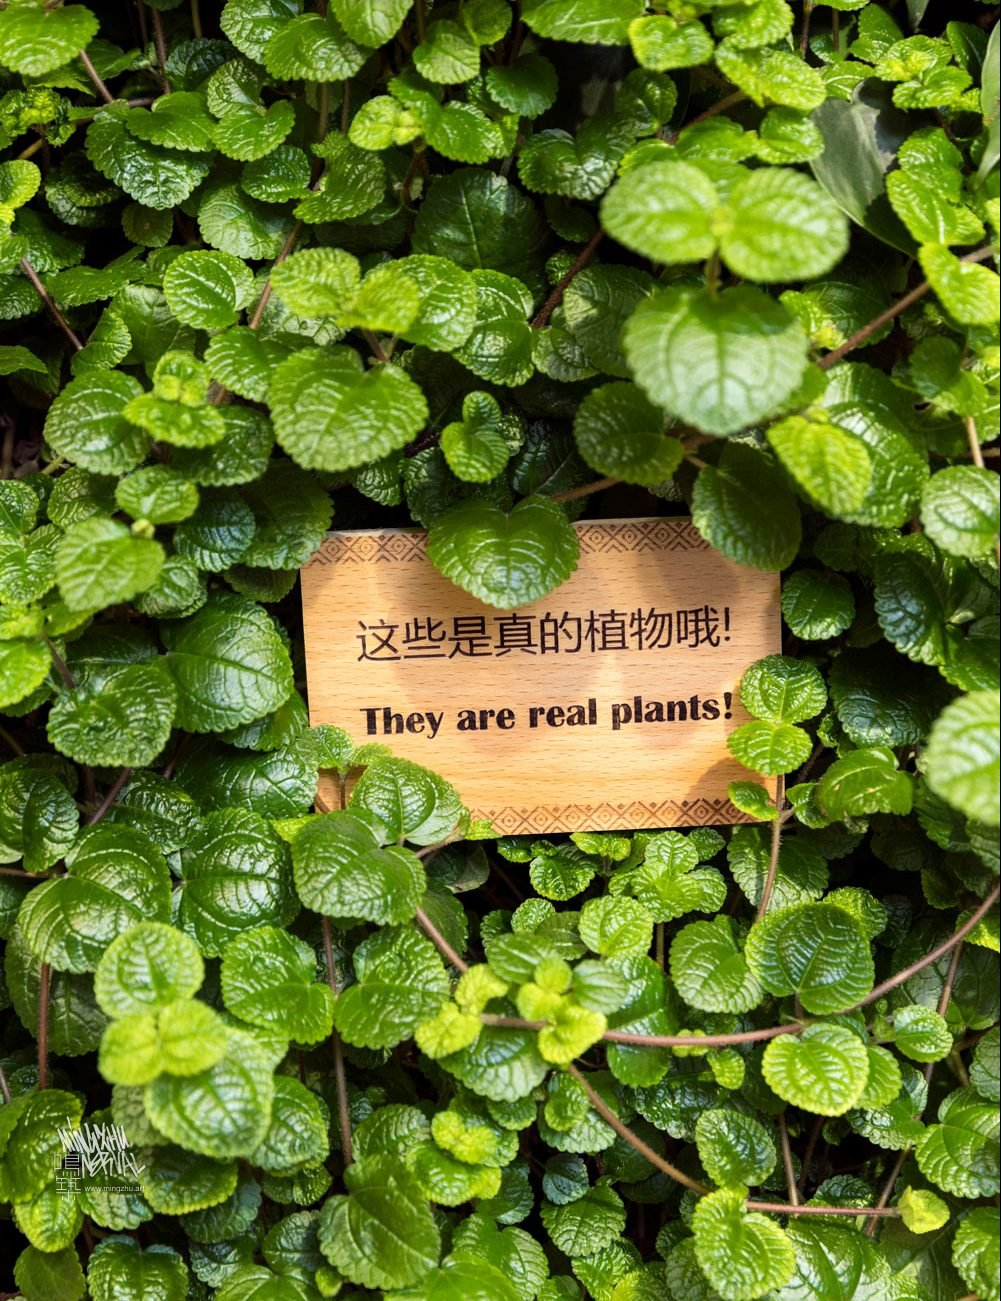 At Mingzhu Nerval, we thrive at creating the most beautiful vertical gardens in the world. For Peet's Coffee, we created a californian living wall design – Shanghai, 2017.